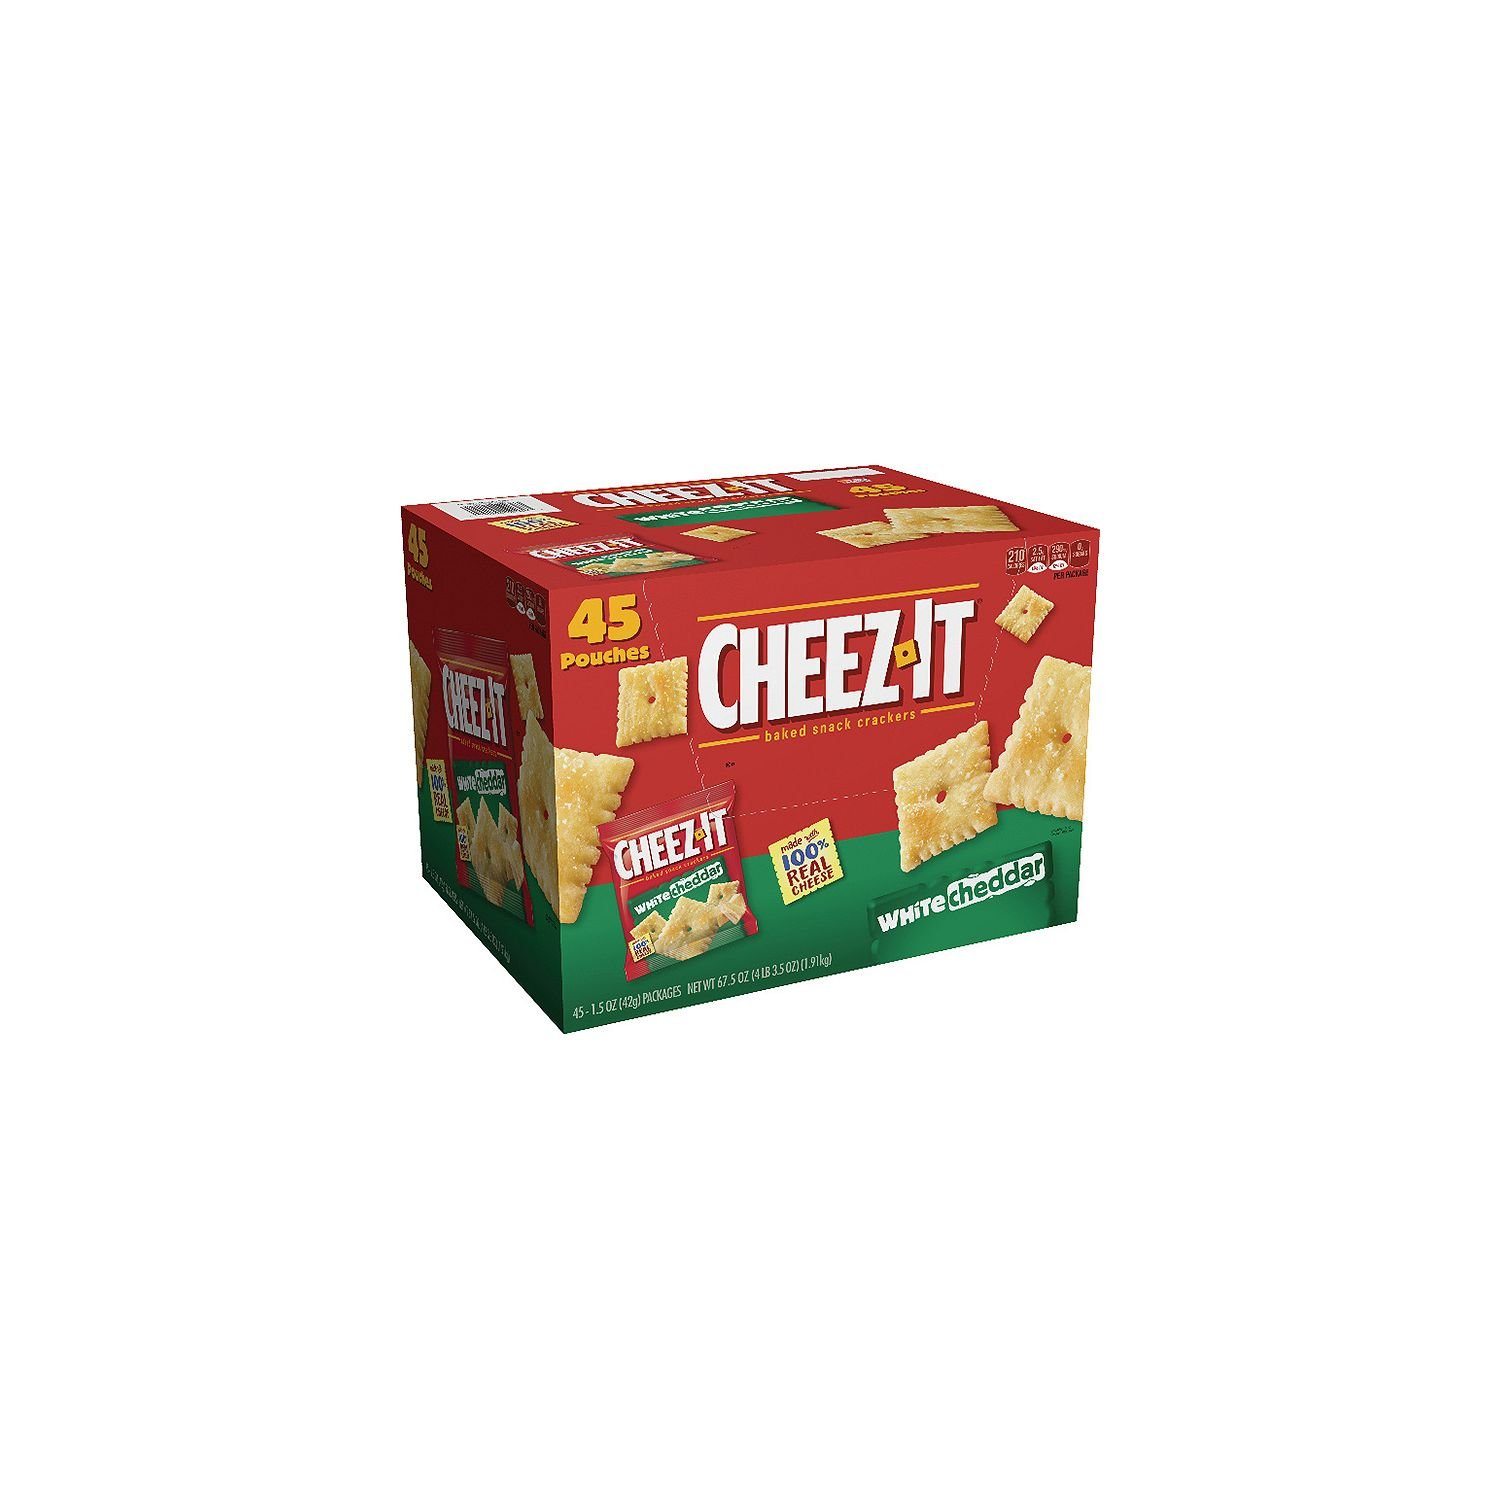 Cheez-It White Cheddar Crackers Snack Packs (1.5 oz. packets, 45 ct.) by Cheez-It